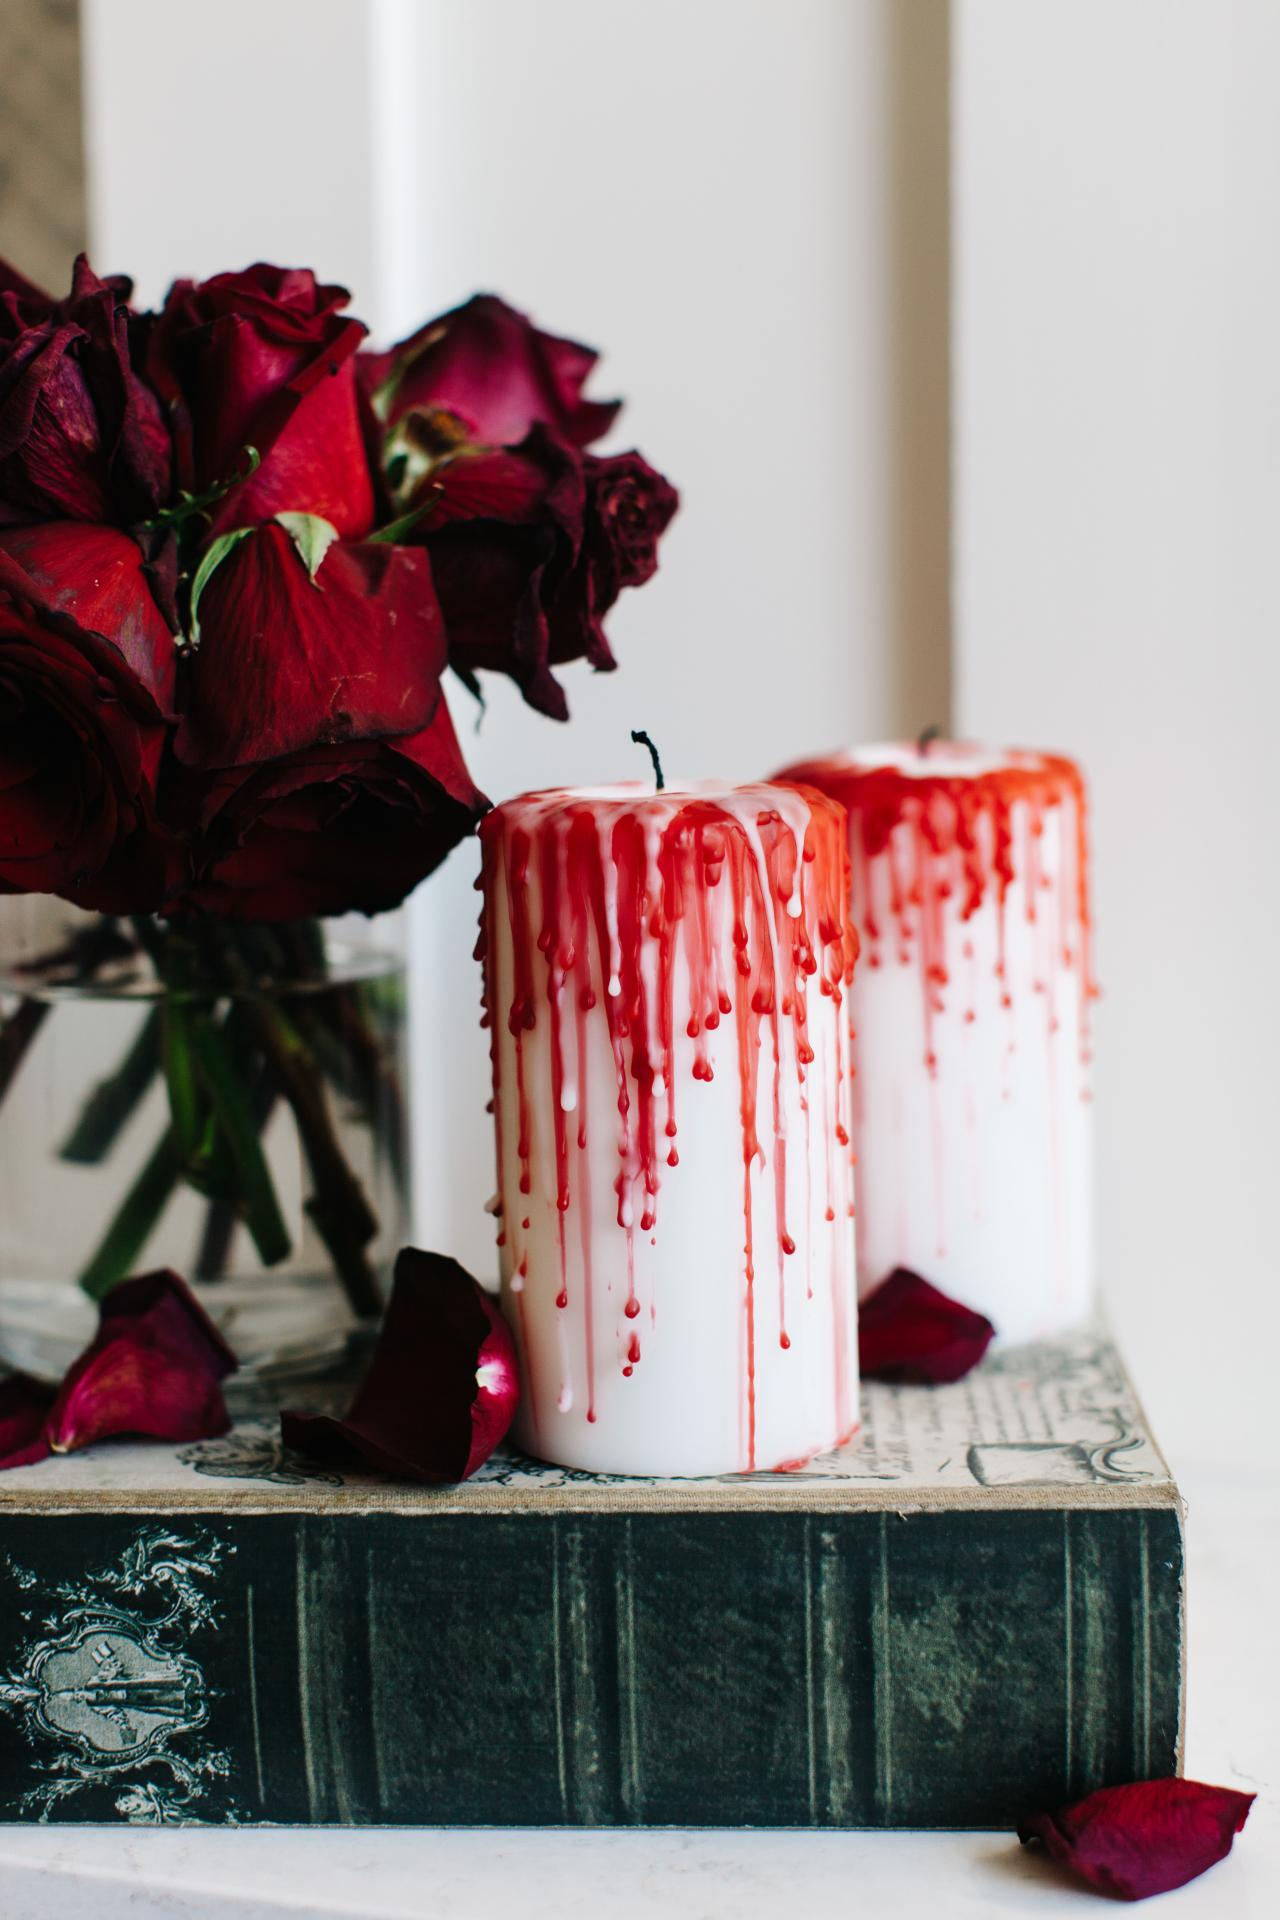 how to make halloween candles dripping with blood - Bloody Halloween Decorations